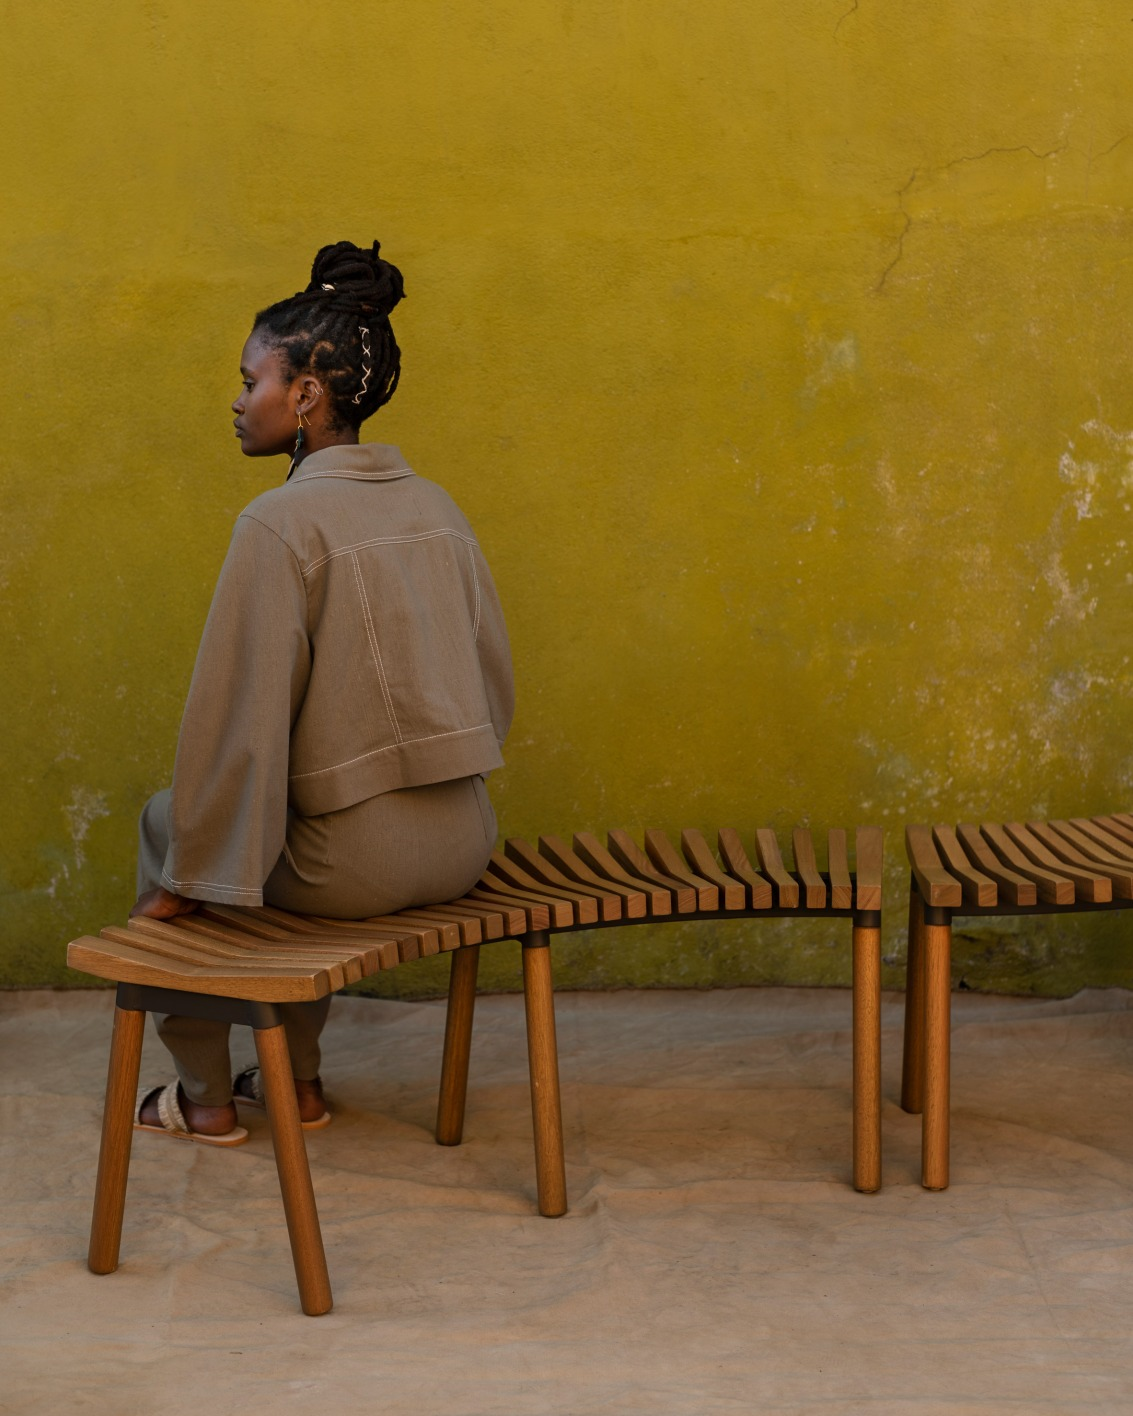 ikea-overallt-design-indaba-african-furniture-homeware_dezeen_2364_col_13